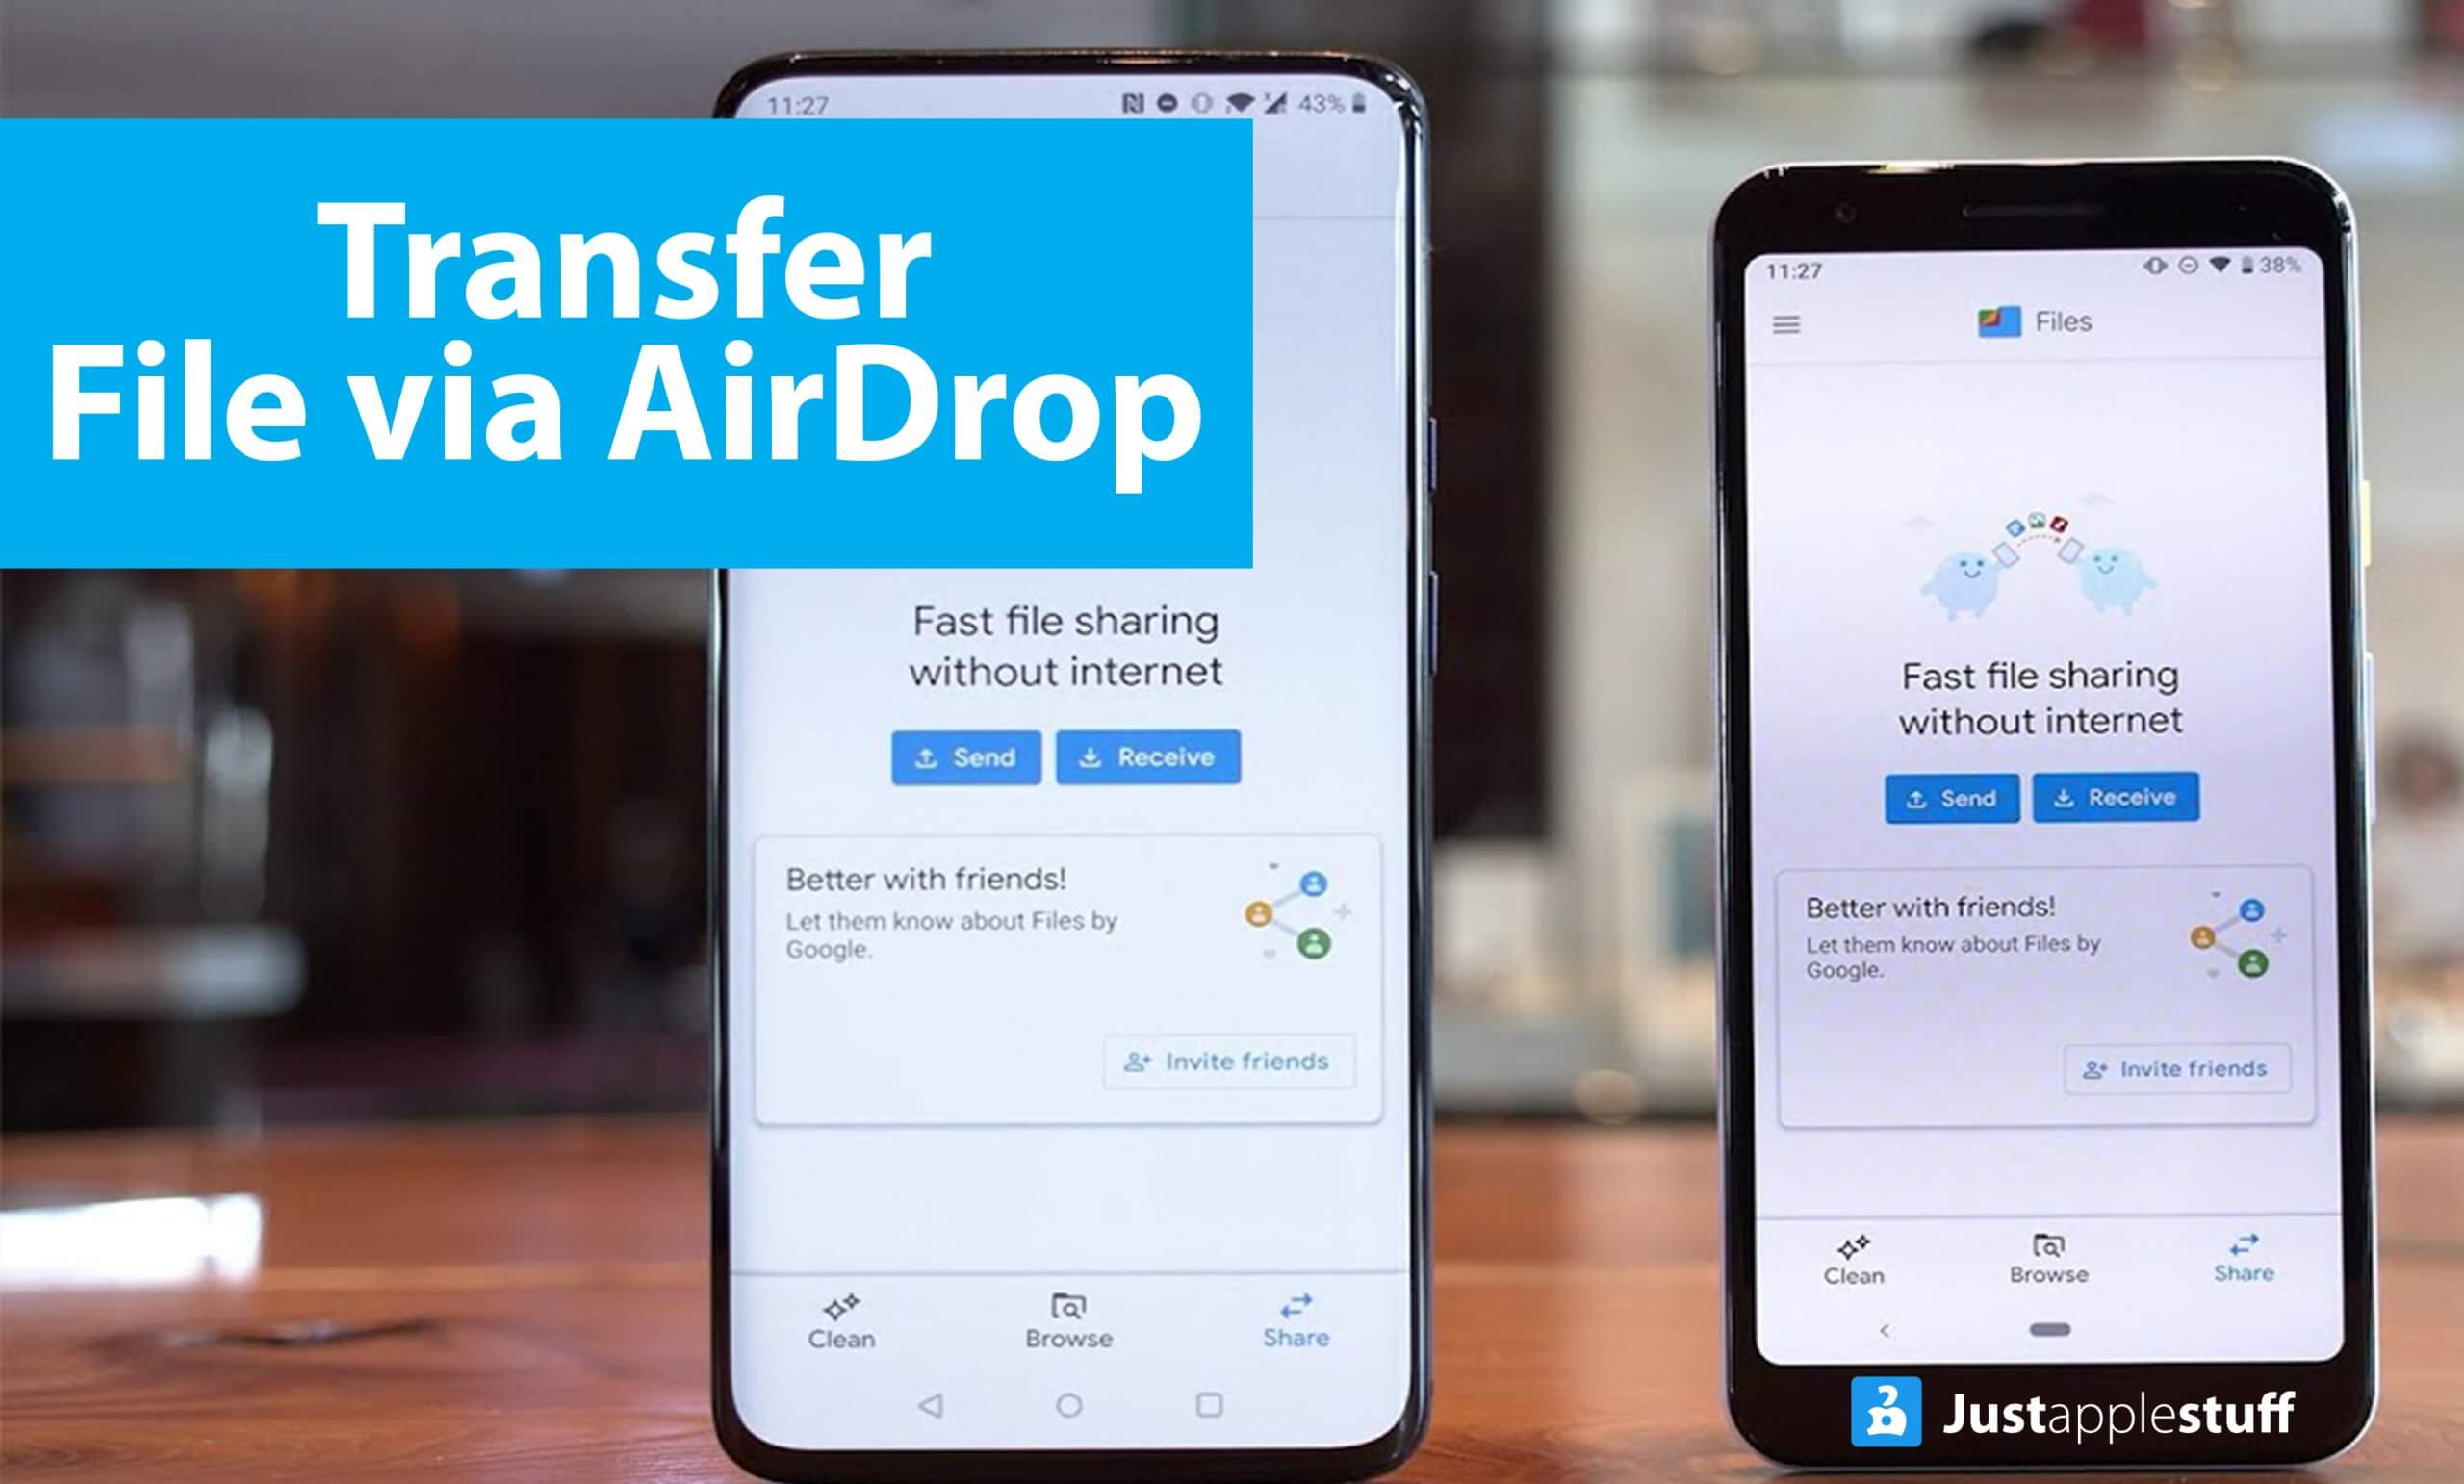 How to Transfer File via AirDrop